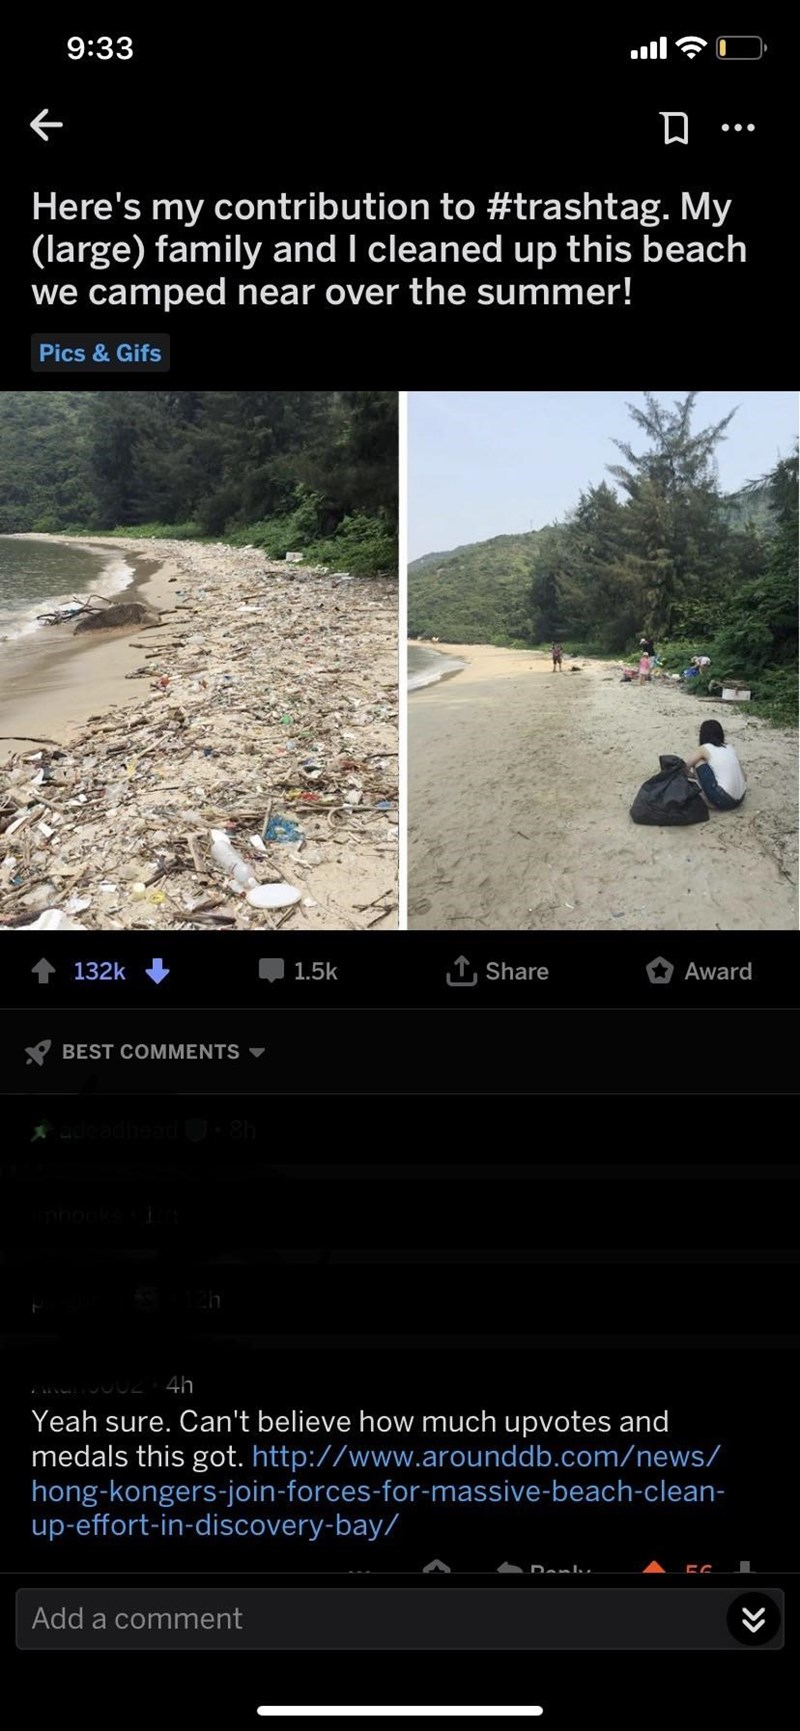 picture bech with rubbish and clean beach Here's my contribution to #trashtag. My (large) family and I cleaned up this beach we camped near over the summer! Pics&Gifs 132k 1.5k Share Award BEST COMMENTS 4h Yeah sure. Can't believe how much upvotes and medals this got. http://www.arounddb.com/news/ hong-kongers-join-forces-for-massive-beach-clean- up-effort-in-discovery-bay/ Add a comment (